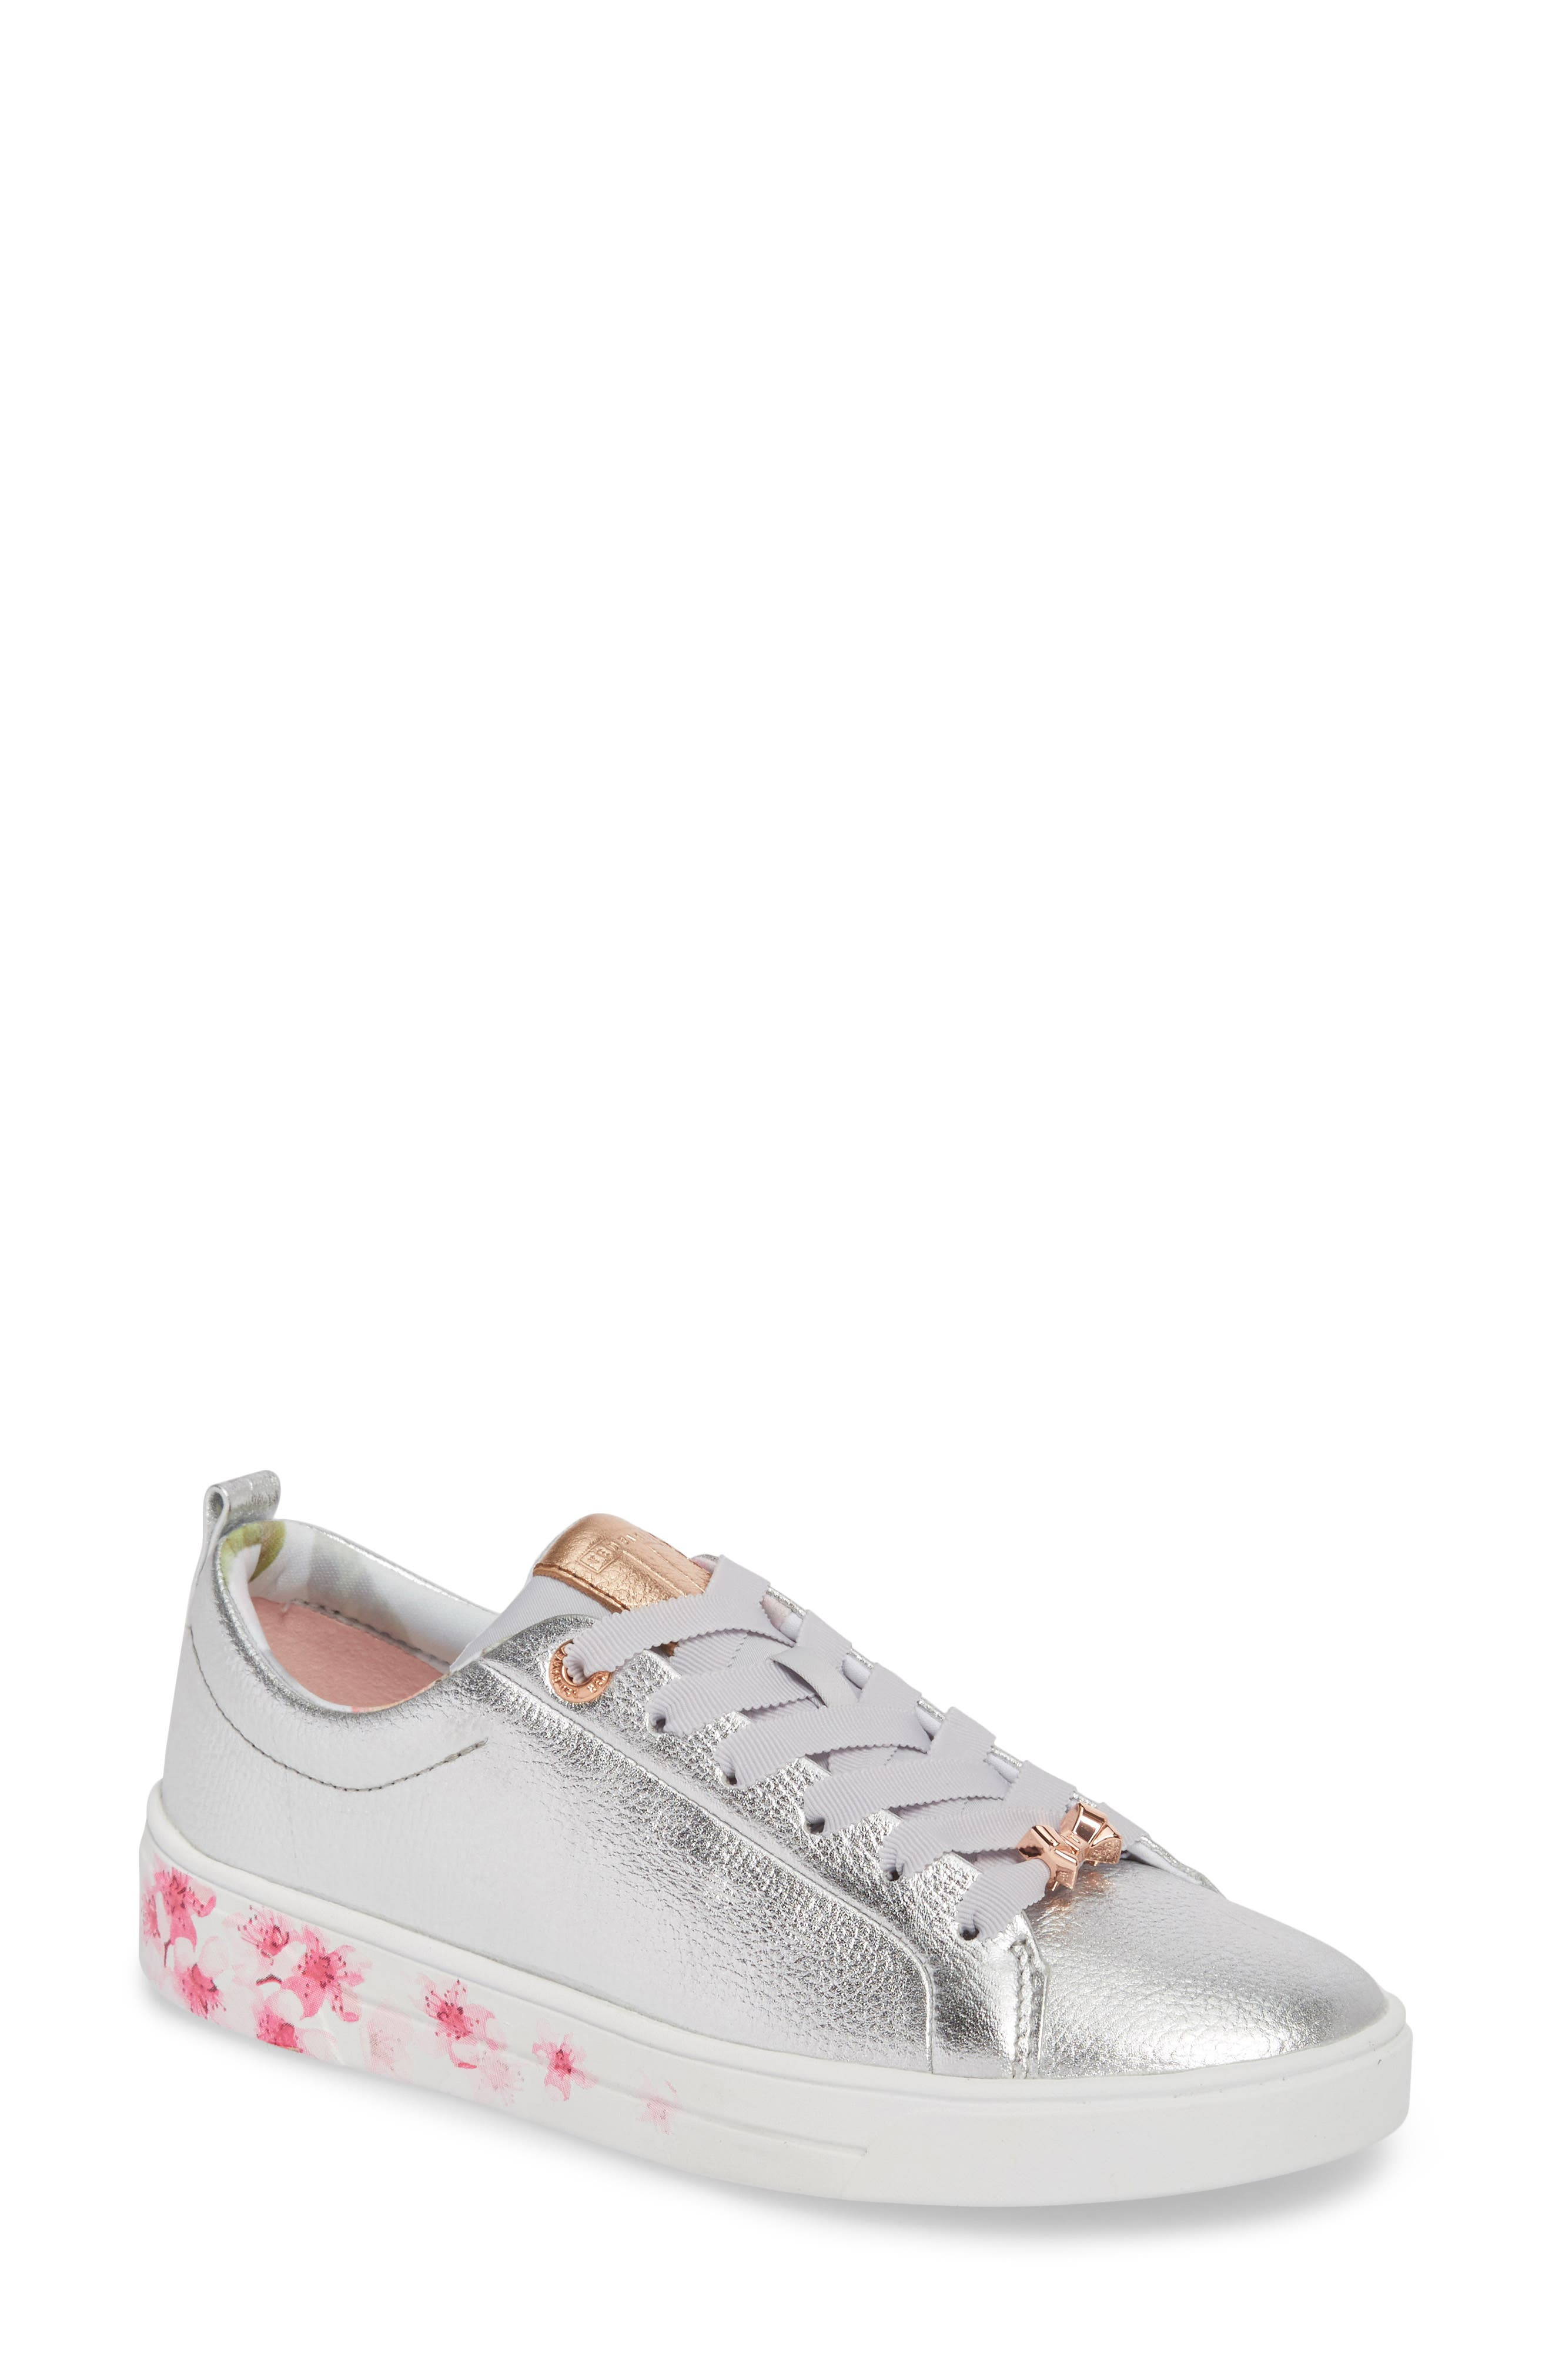 Kelleip Sneaker,                         Main,                         color, Silver/ Blossom Leather